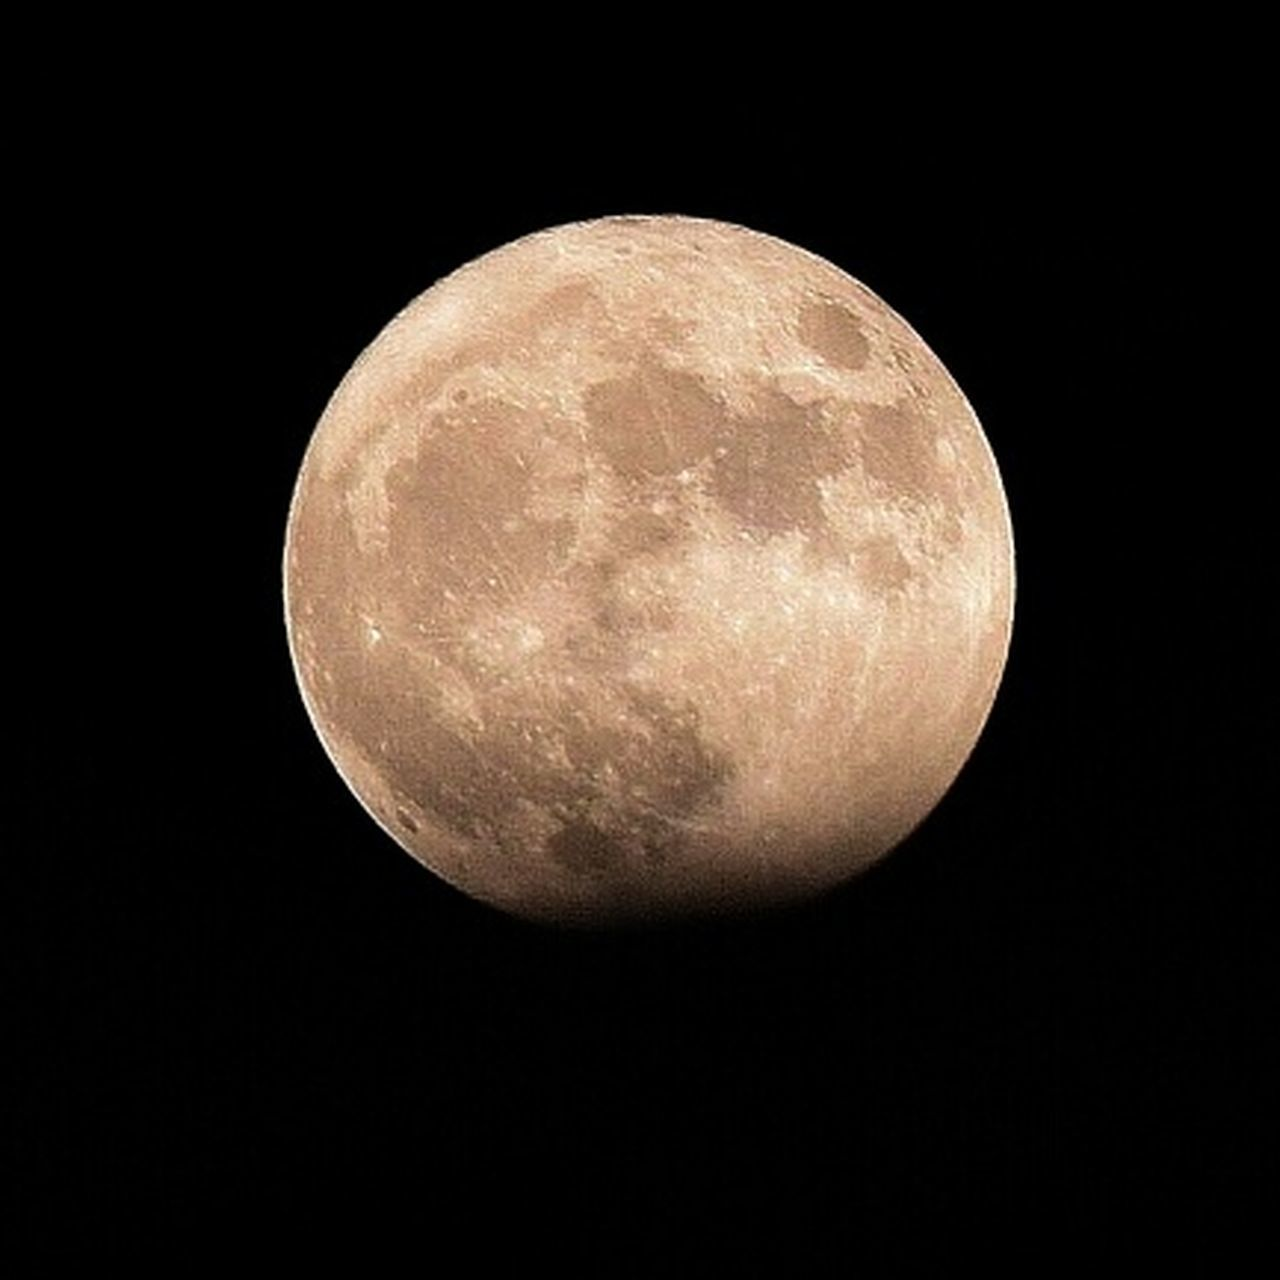 astronomy, night, moon, full moon, moon surface, planetary moon, space exploration, space, nature, no people, outdoors, beauty in nature, scenics, discovery, sky, black background, clear sky, close-up, satellite view